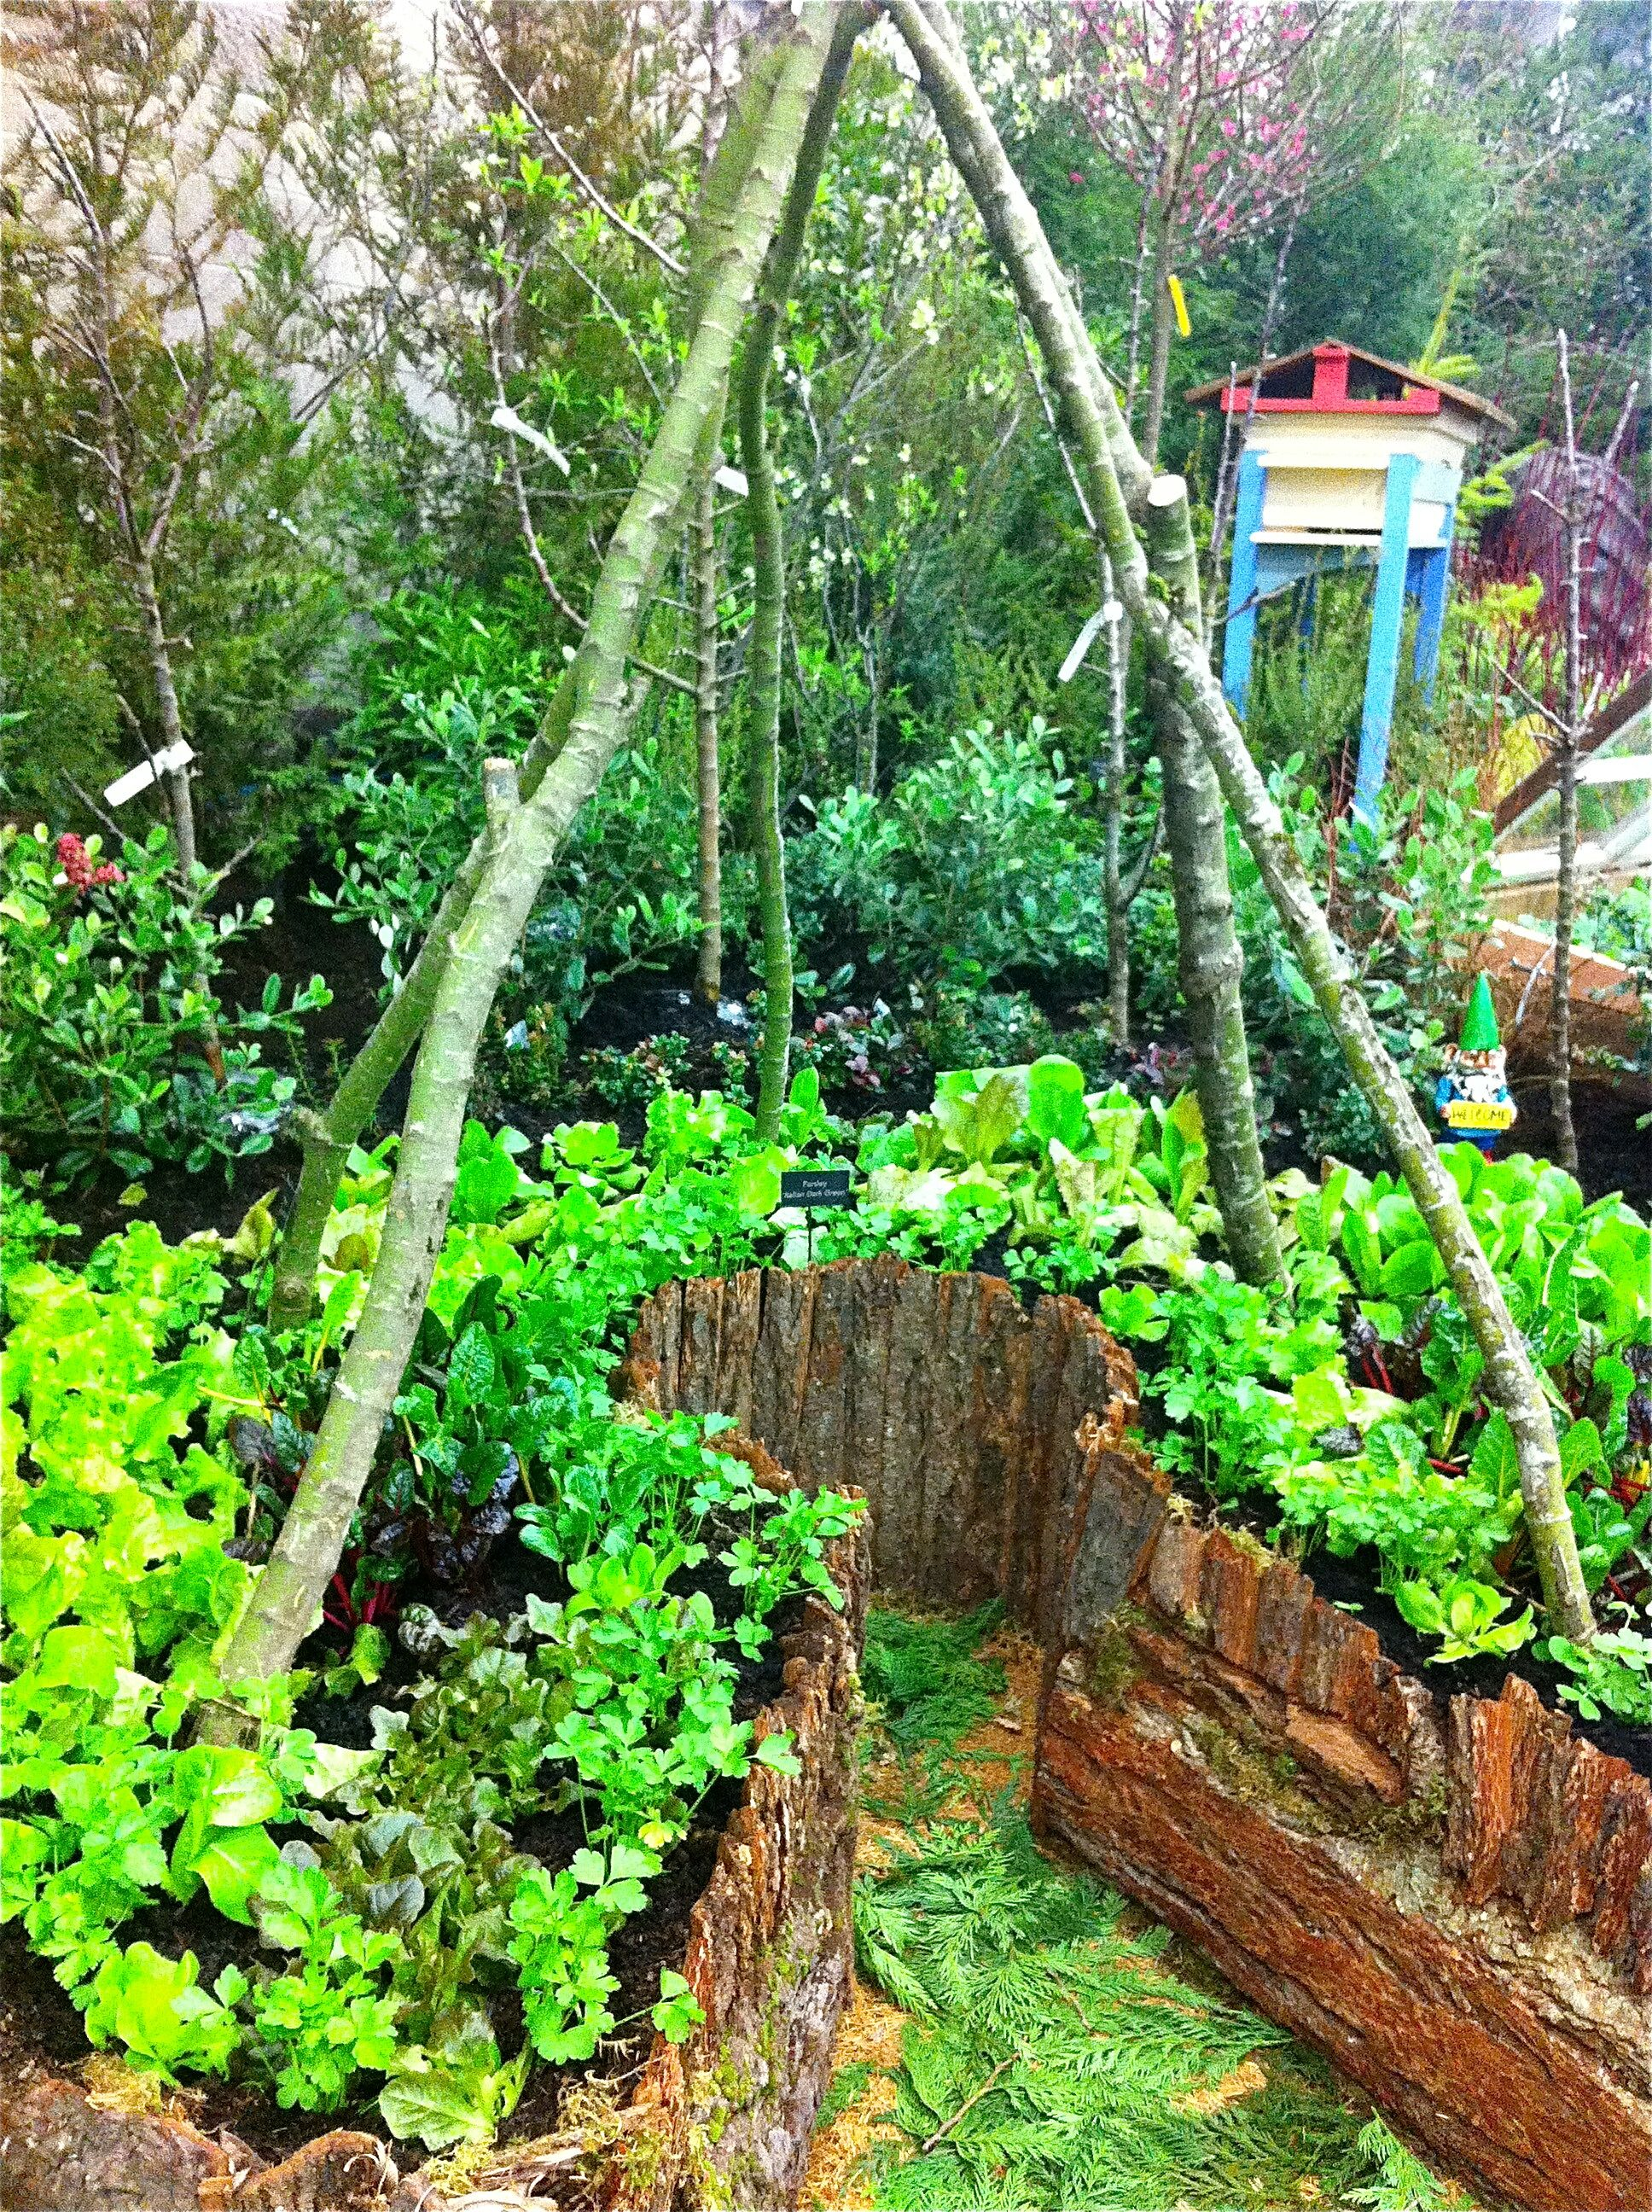 permaculture garden design | Gardening | Pinterest on Backyard Permaculture Design id=19445